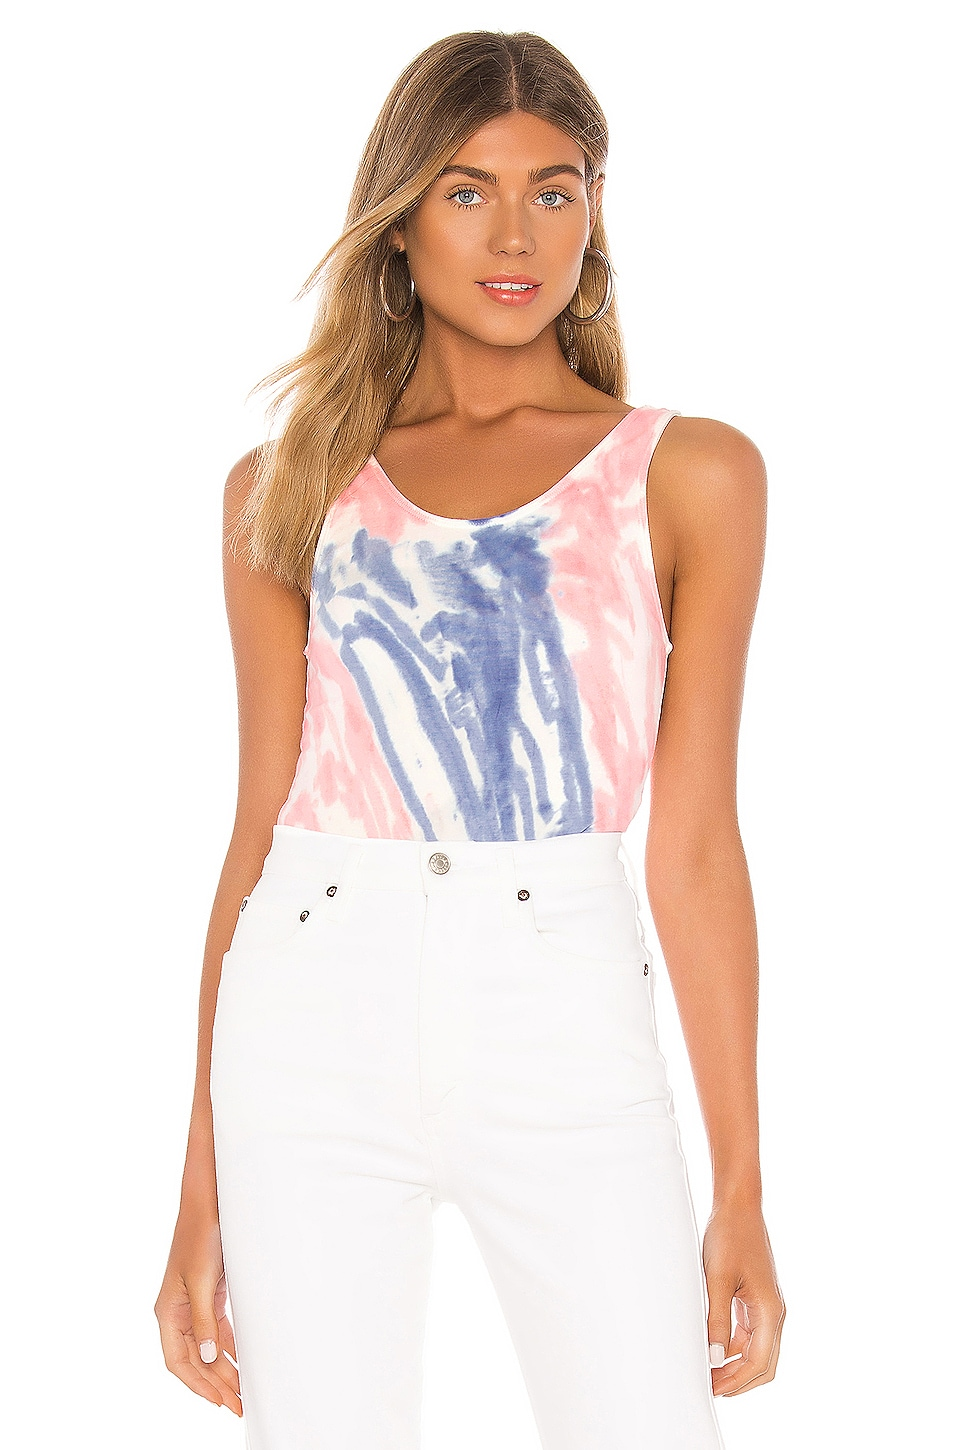 Bodysuit             DAYDREAMER                                                                                                                                         Sale price:                                                                       CA$ 70.21                                                                  Previous price:                                                                       CA$ 116.55 4